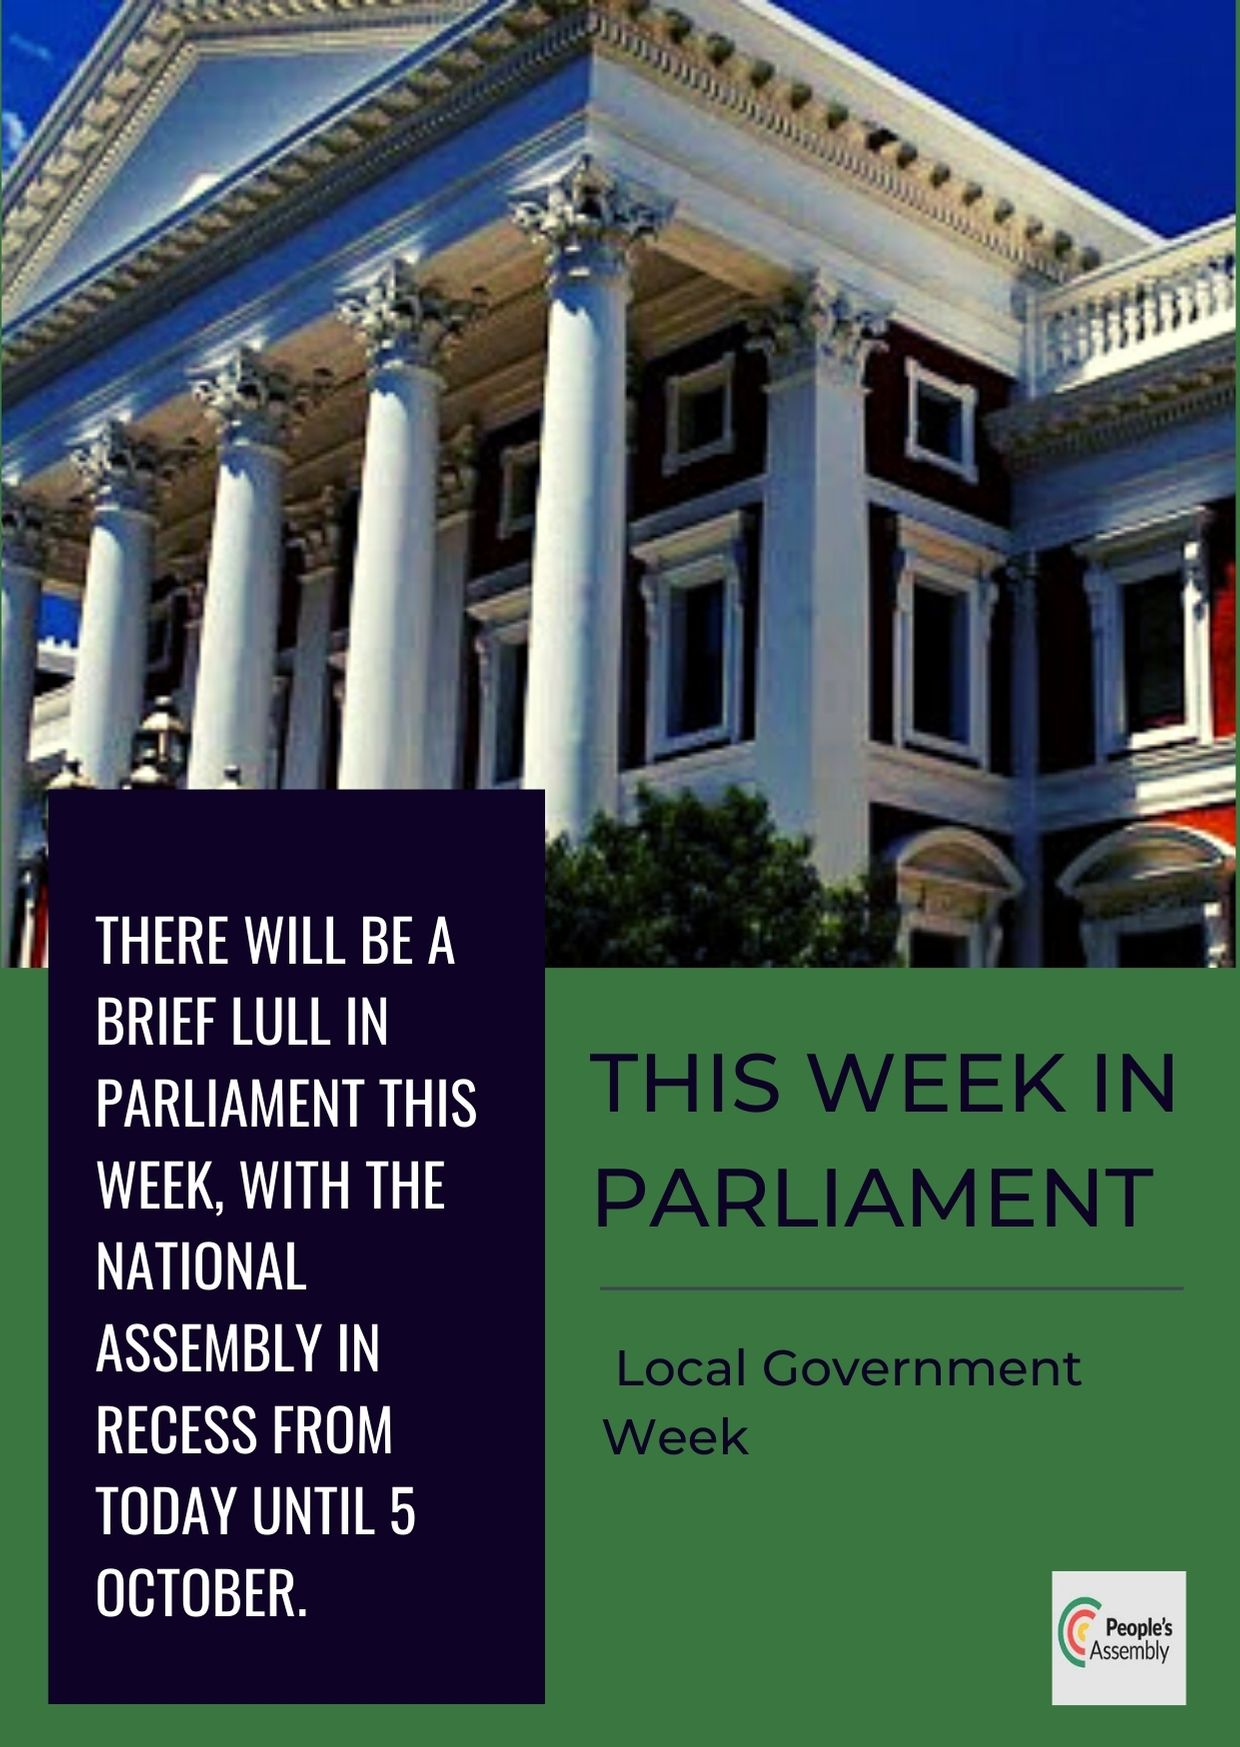 local govt week ahead